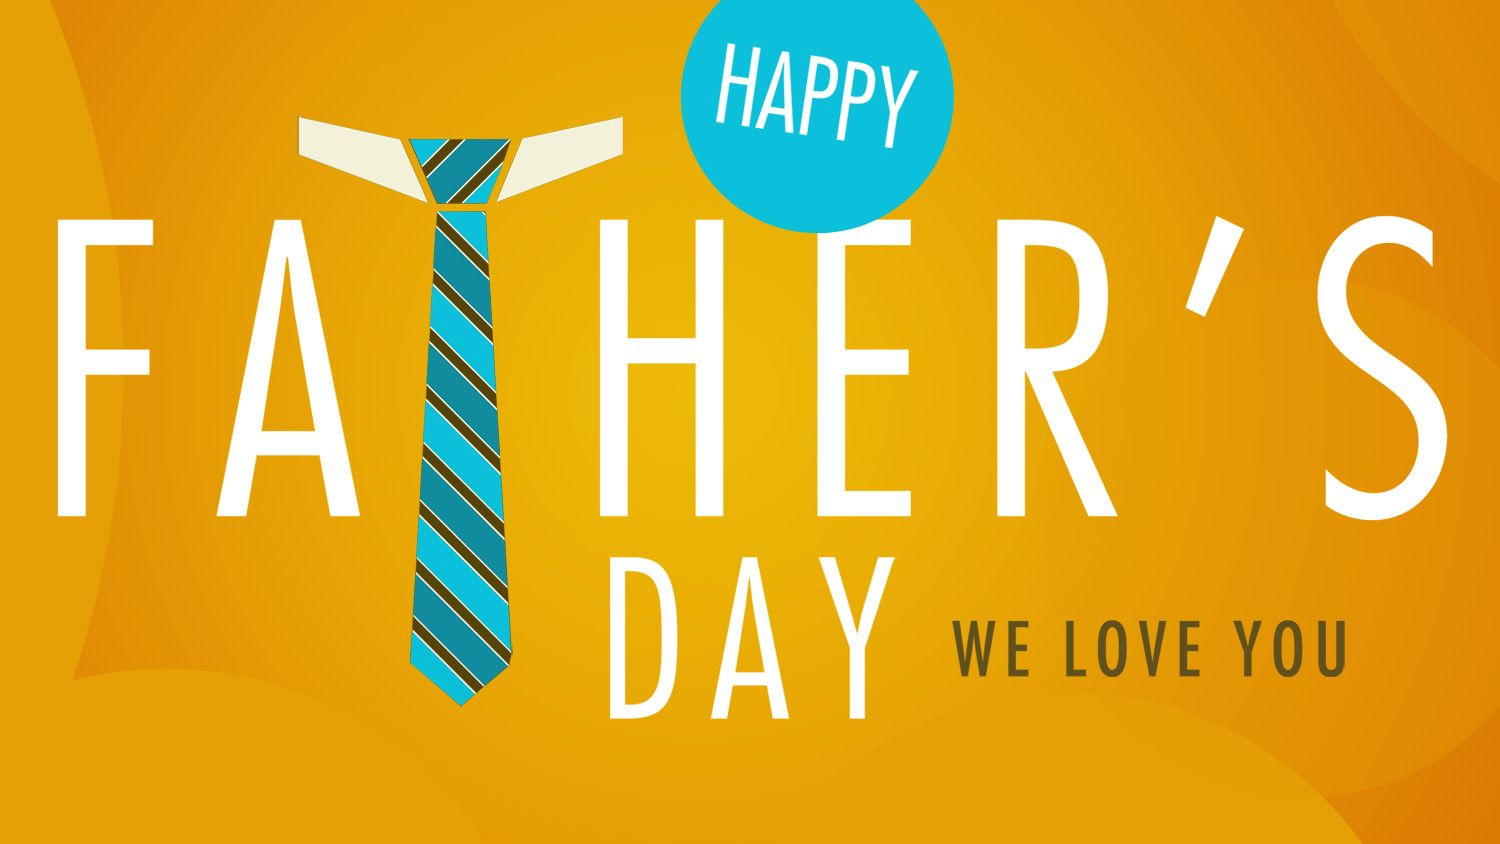 Happy Fathers Day Wallpapers download 1500x844